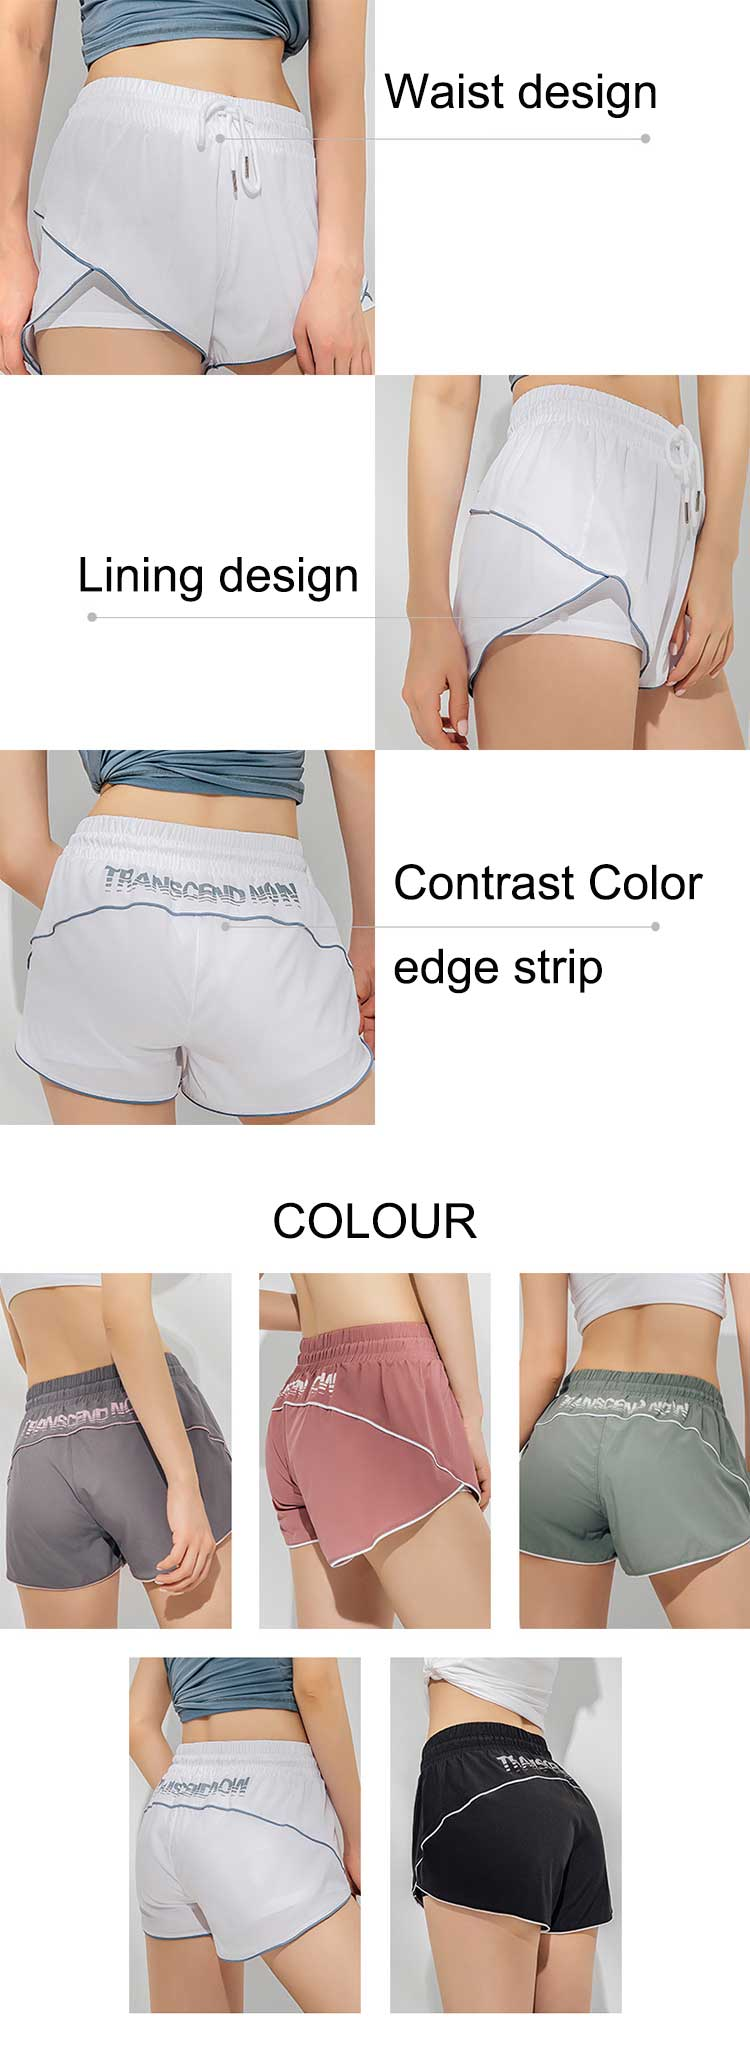 This-pair-of-high-waisted-gym-shorts-is-designed-with-an-elastic-high-waist